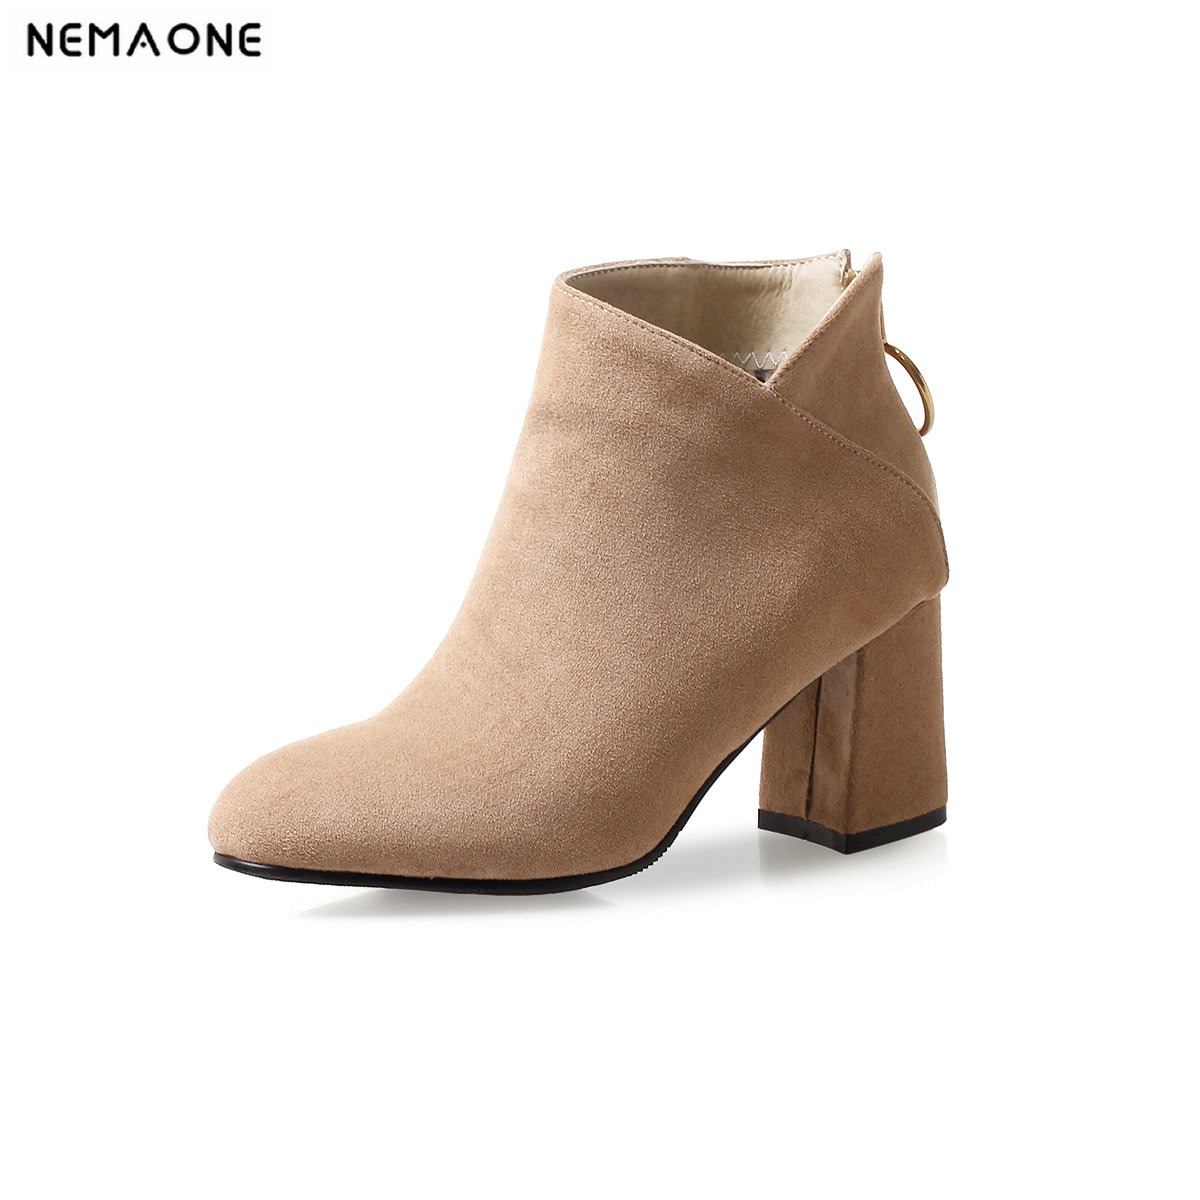 NEMAONE ladies high heels ankle boots wedding party dress shoes woman black red beige women boots large size 42 43 women wedding dress so kate heels red of beige bottom shoes superstar shoes top quality 14cm high heels clogs large size 4 16